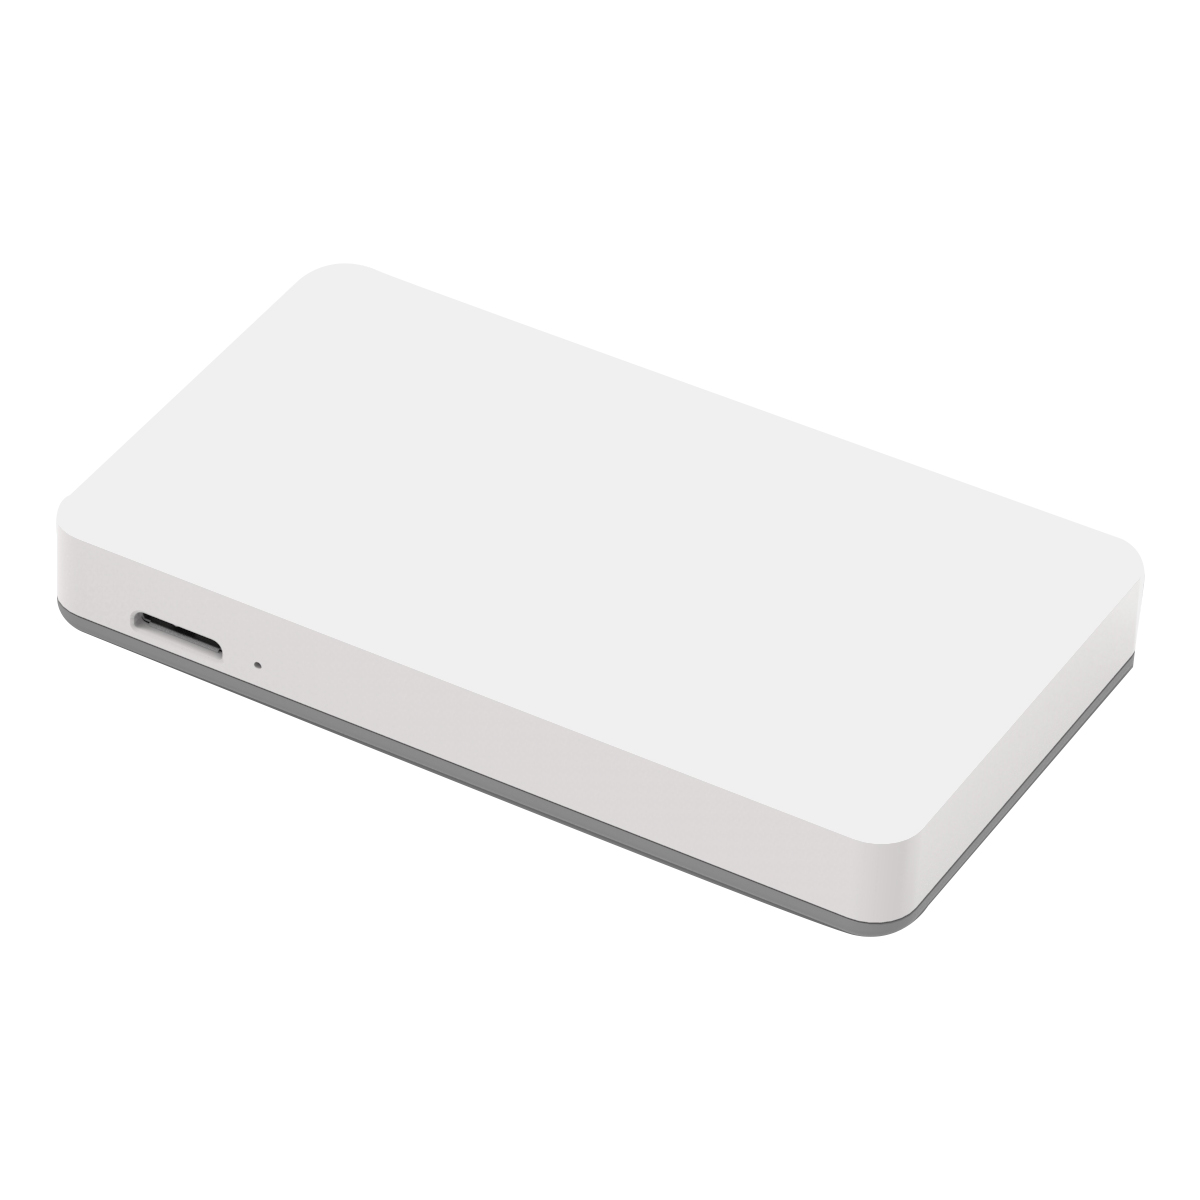 325342716-816 - Mosaic 2.0 16GB Media Hub Power Bank - thumbnail